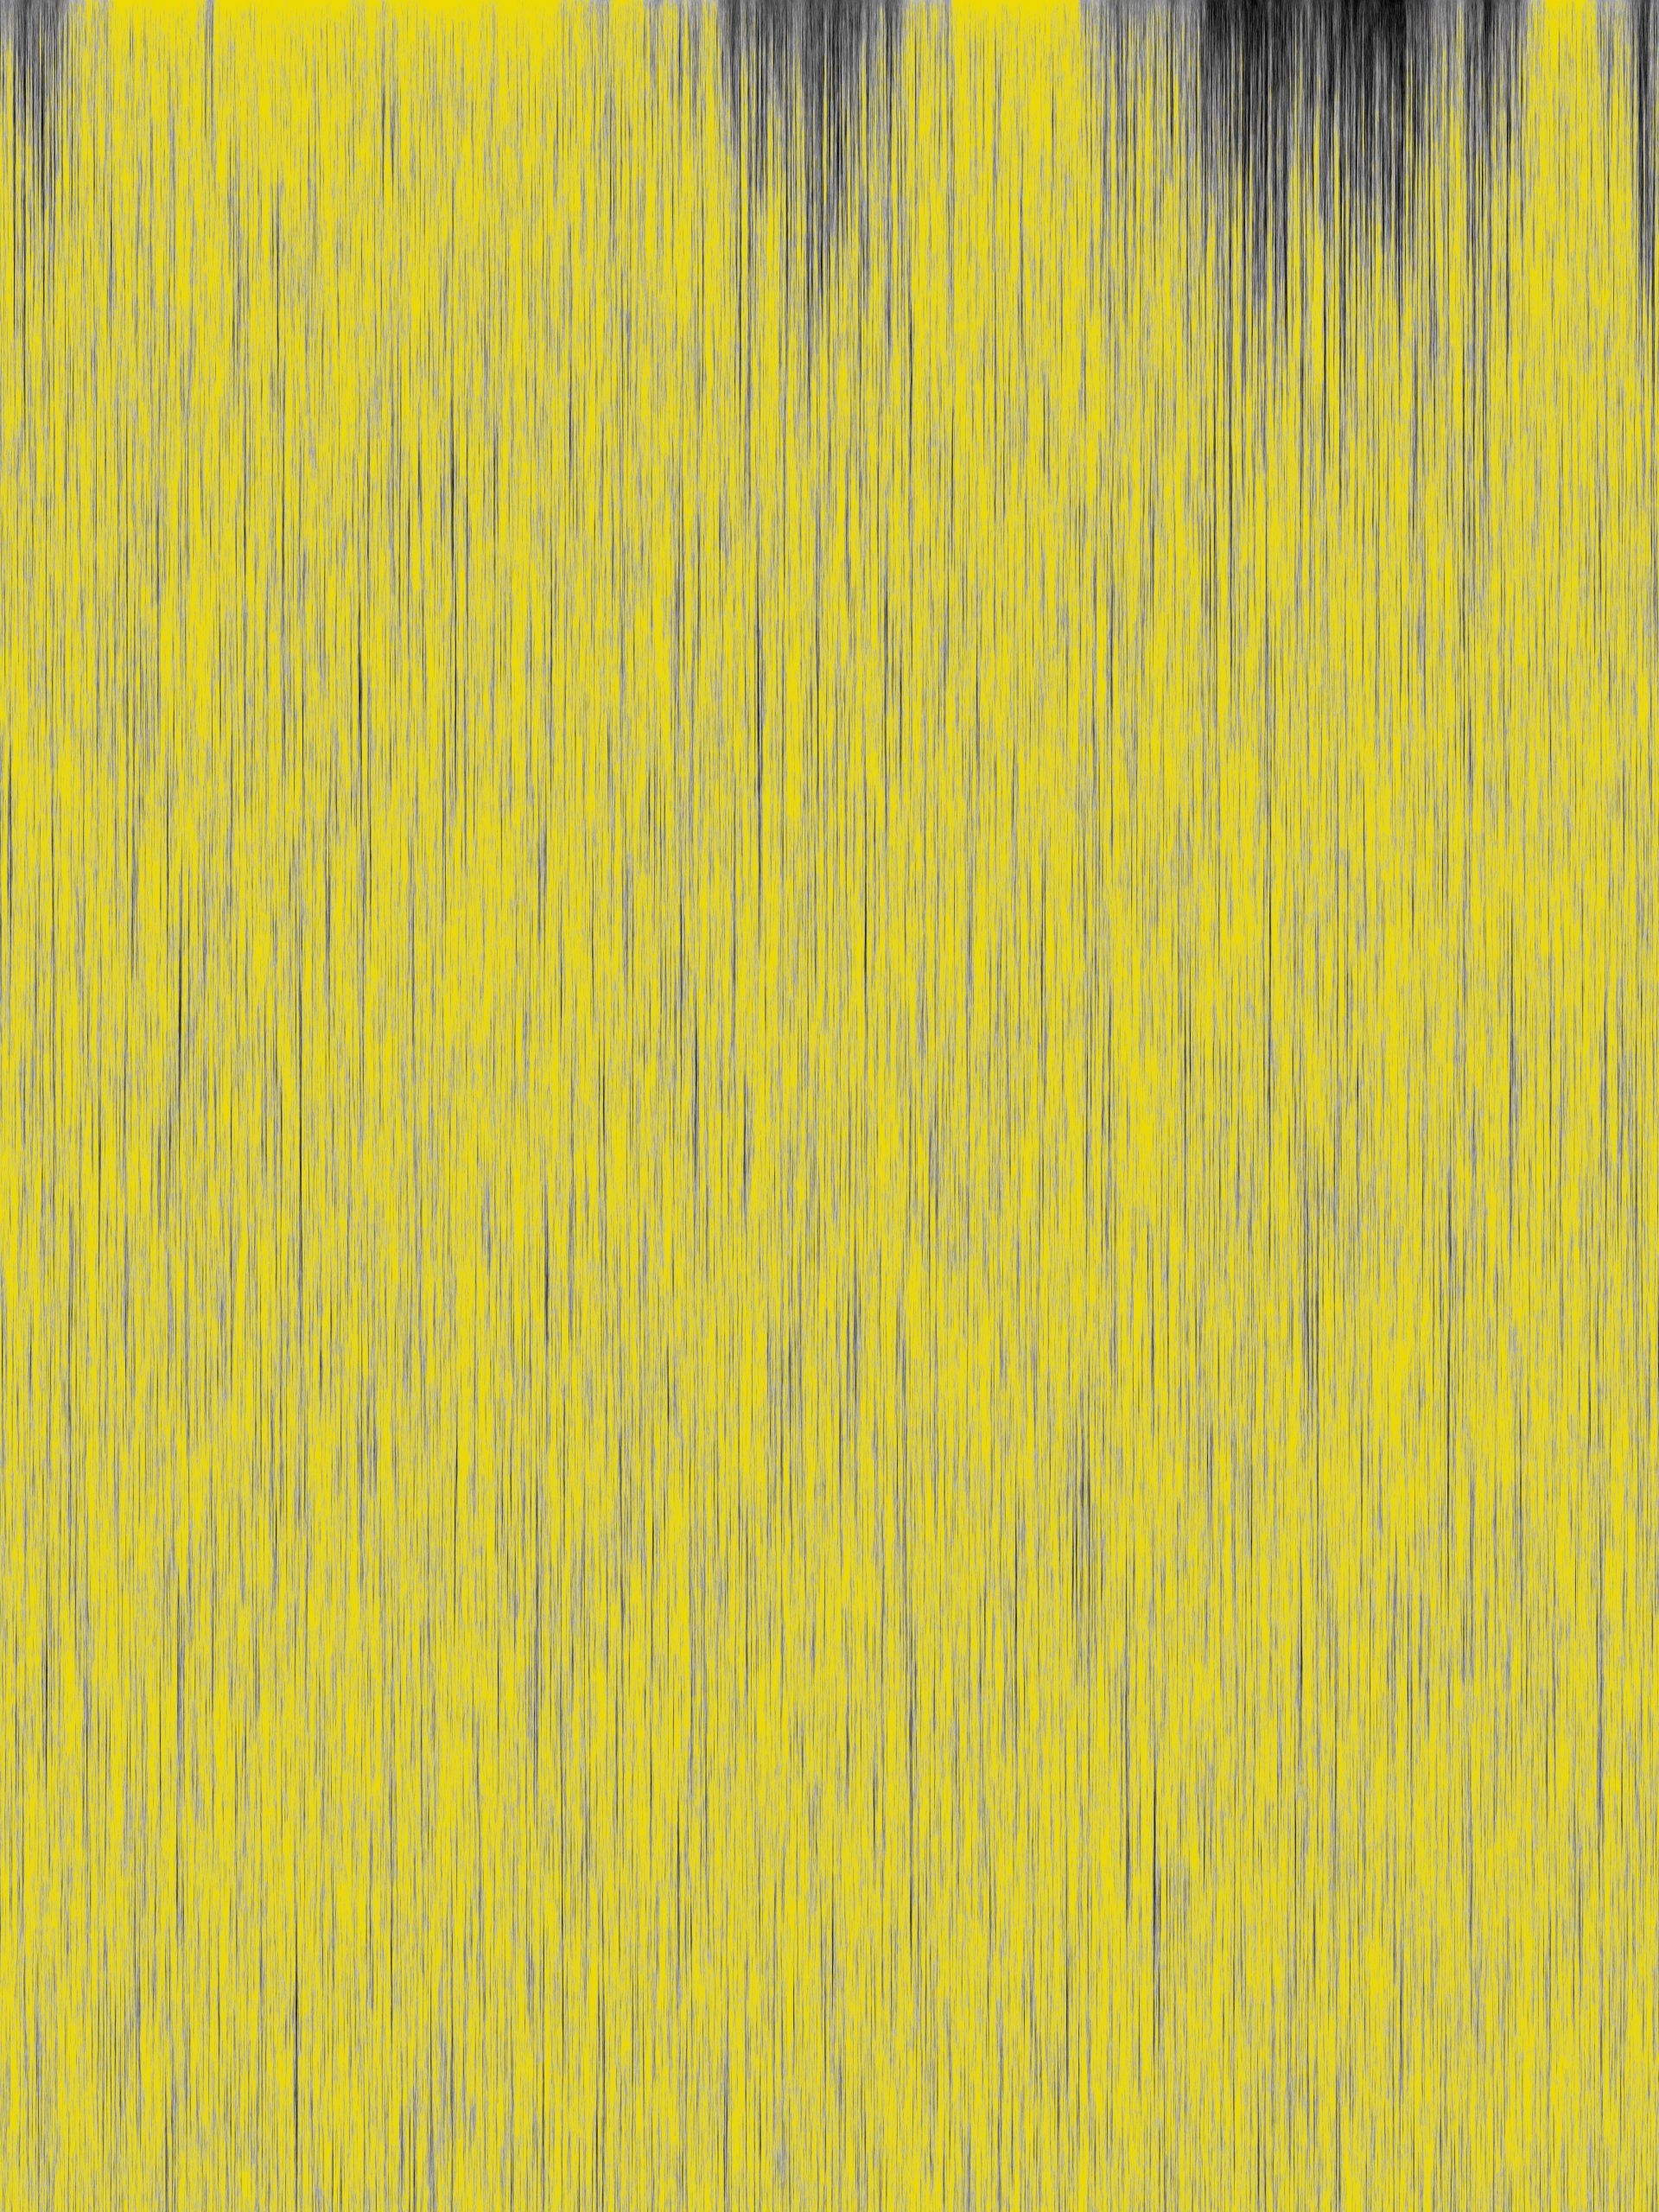 Yellow texture wallpaper